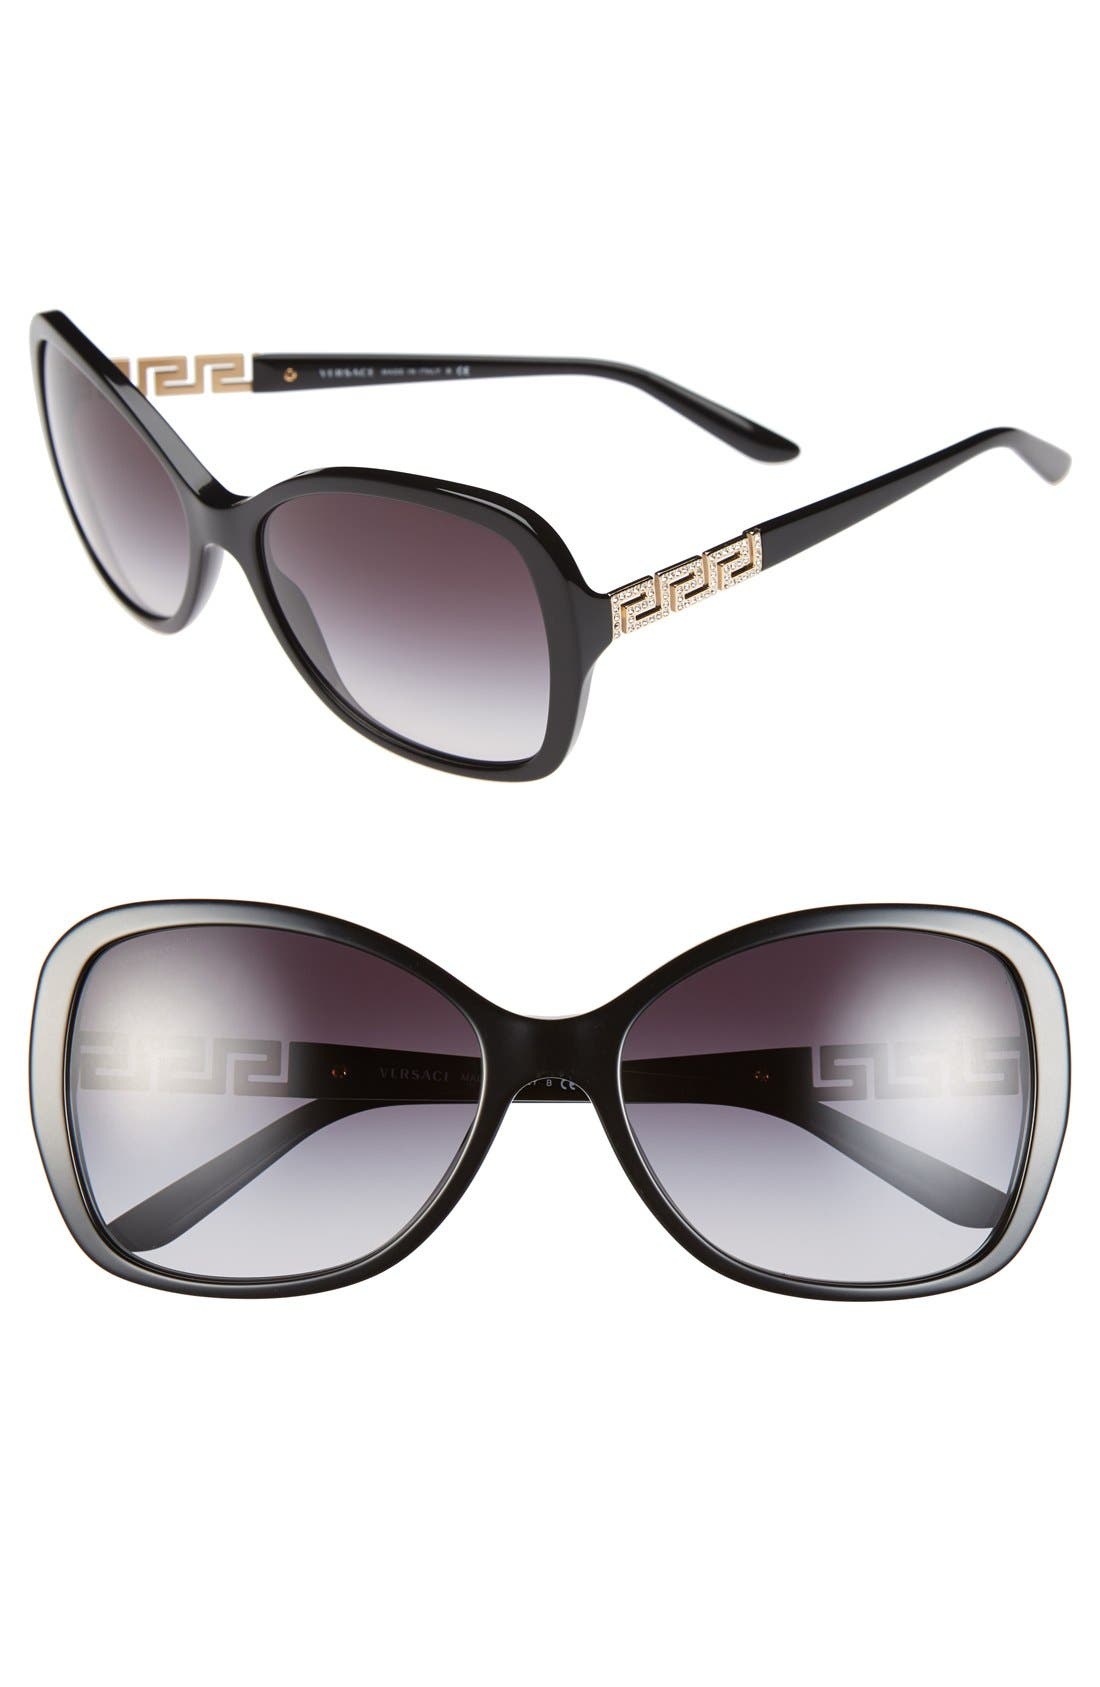 58mm Butterfly Sunglasses,                         Main,                         color, Black